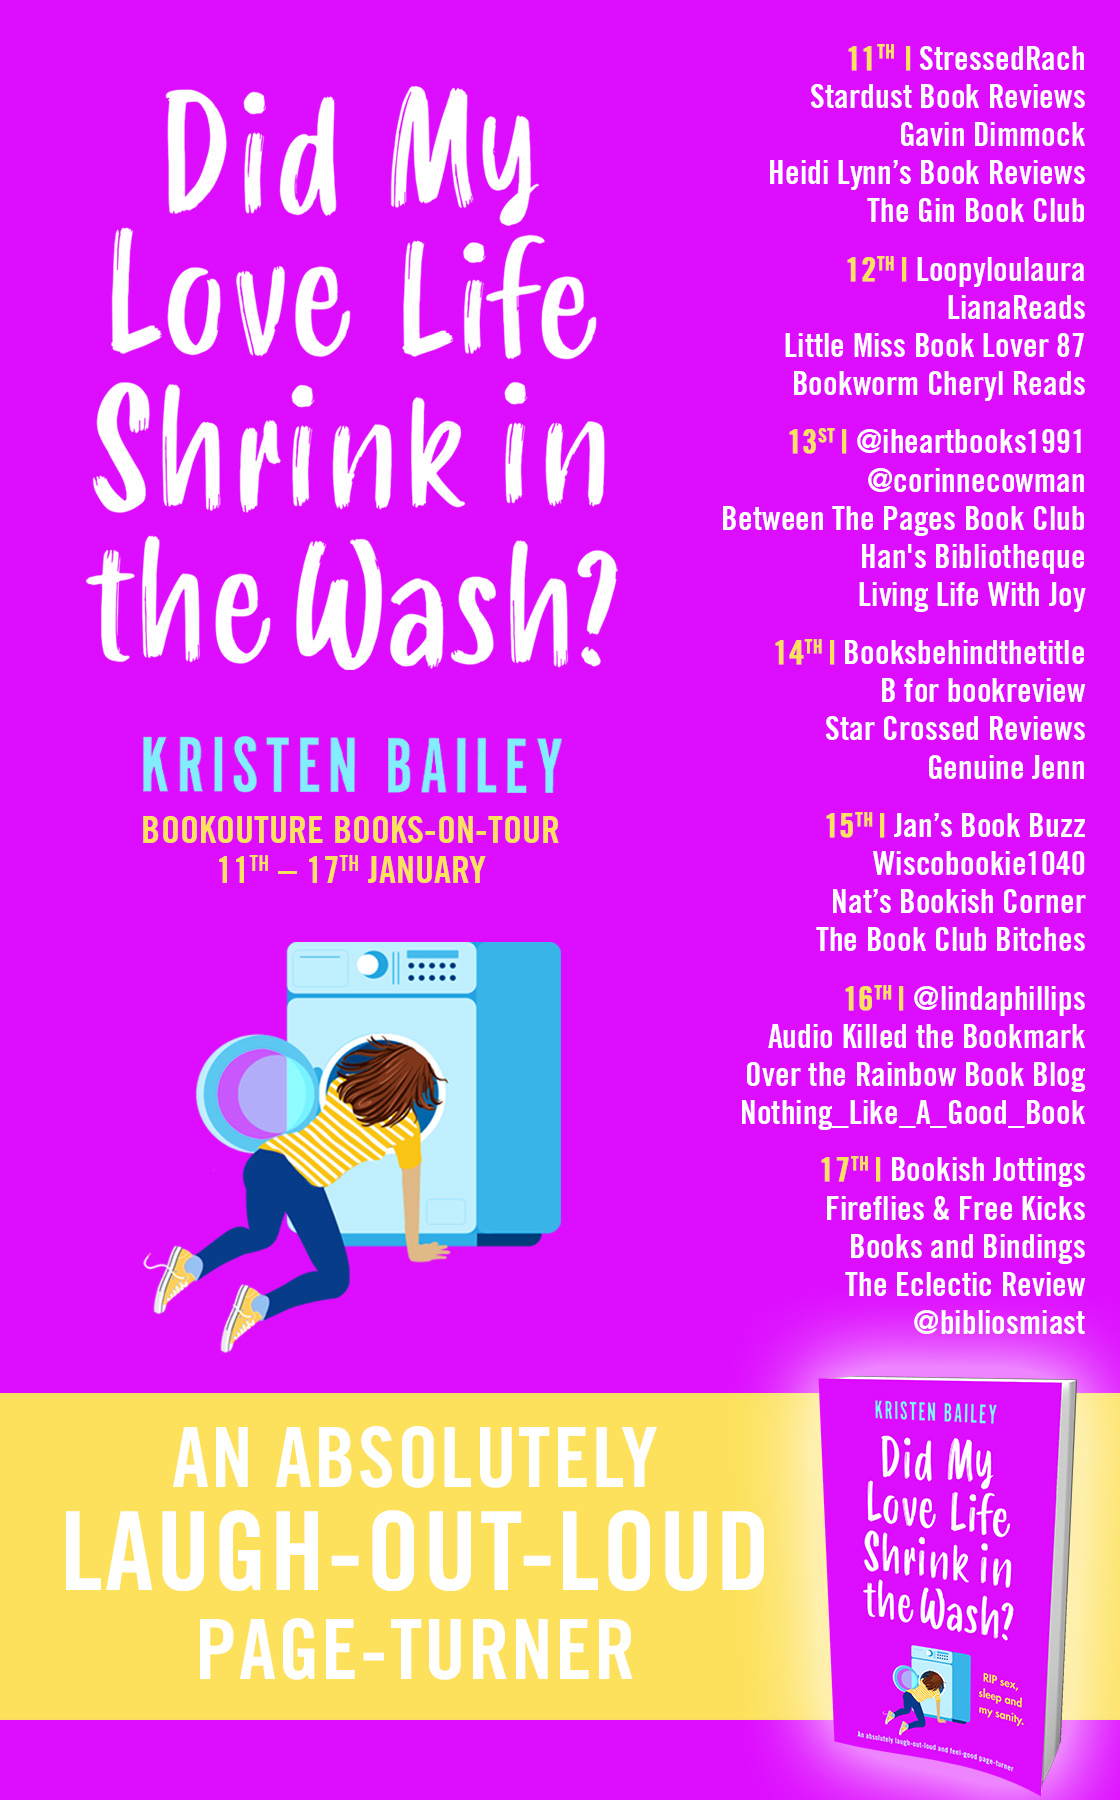 Did My Love Life Shrink in the Wash? blog tour banner